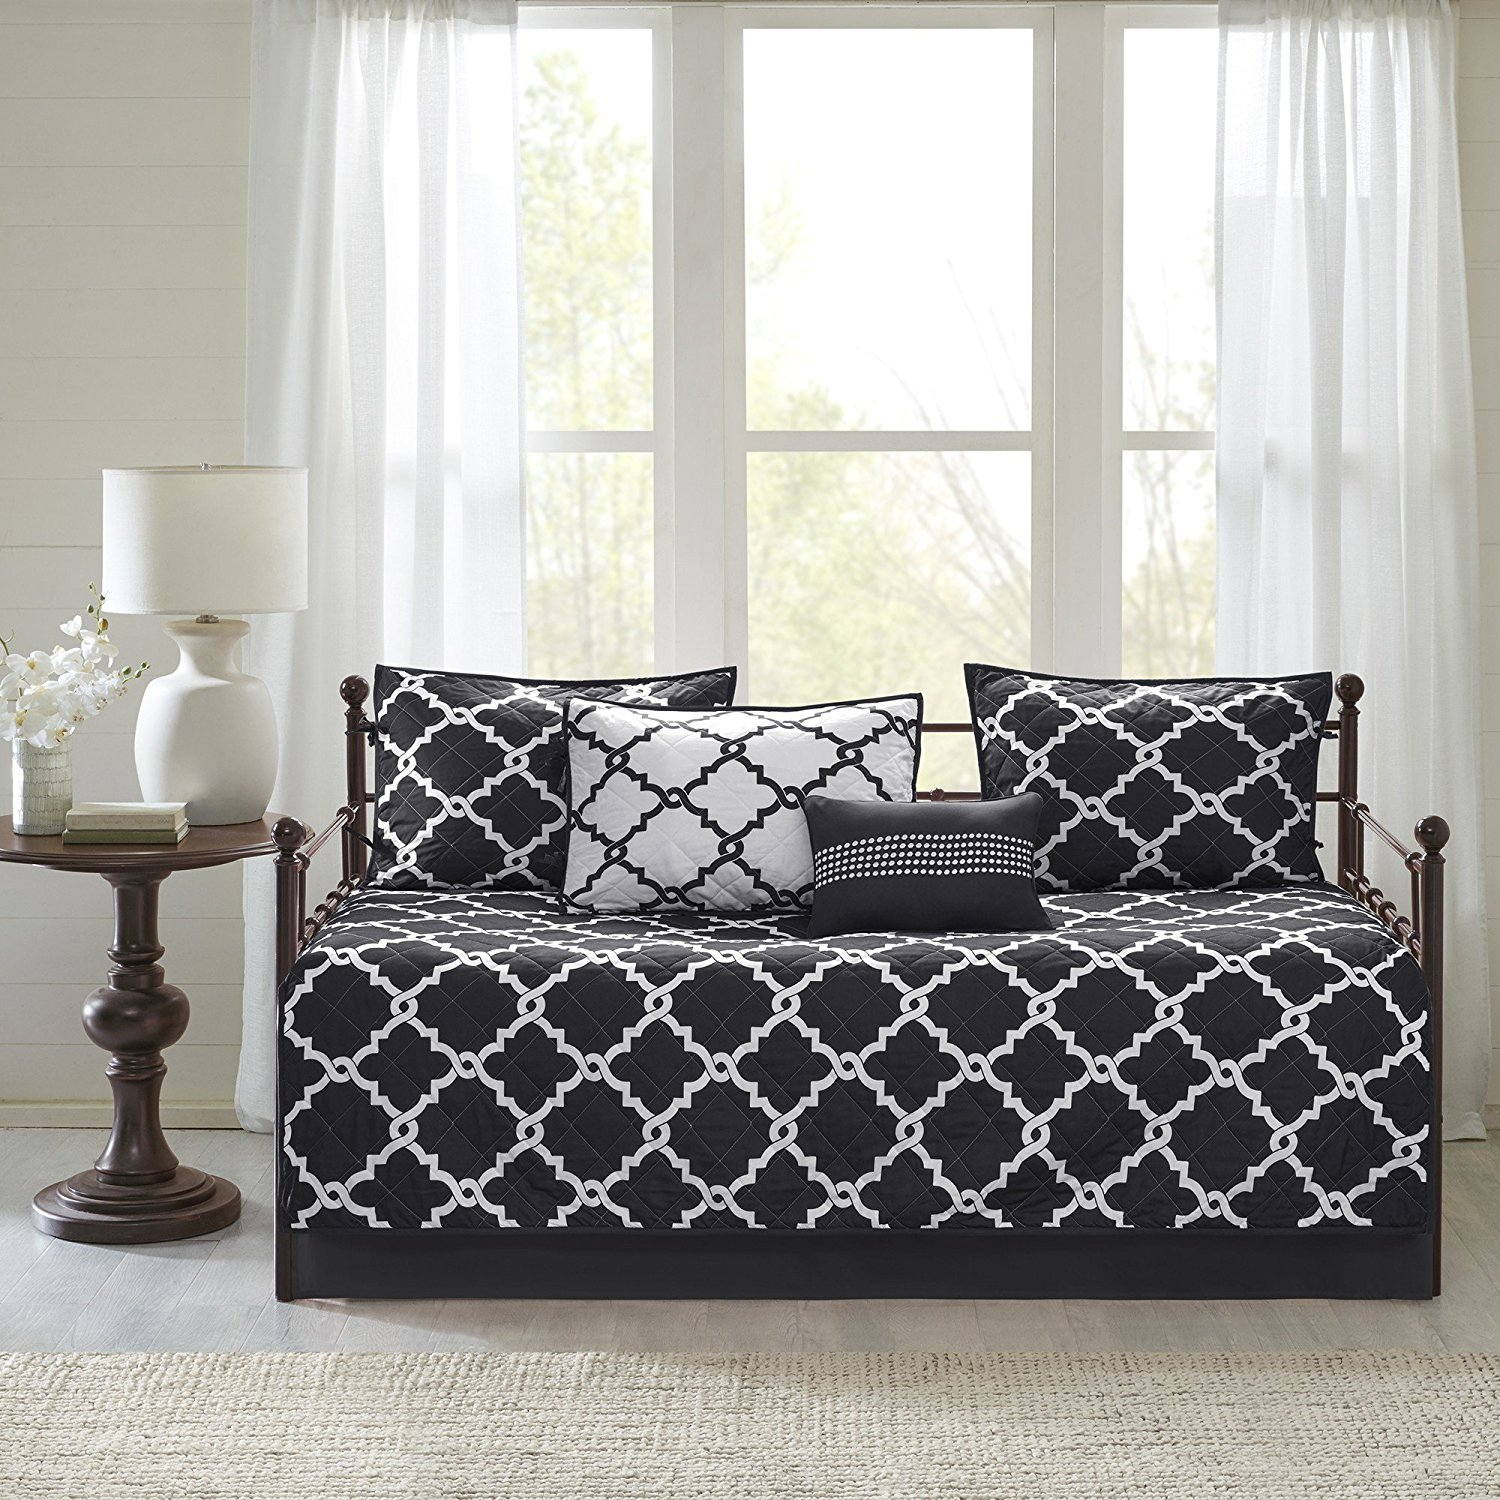 6 Piece Black White Geometric Daybed Set Bedding, Trellis Lattice Shabby Chic Classic Bedding Fretwork Design Pattern Day Bed Bedskirt Pillows, Polyester